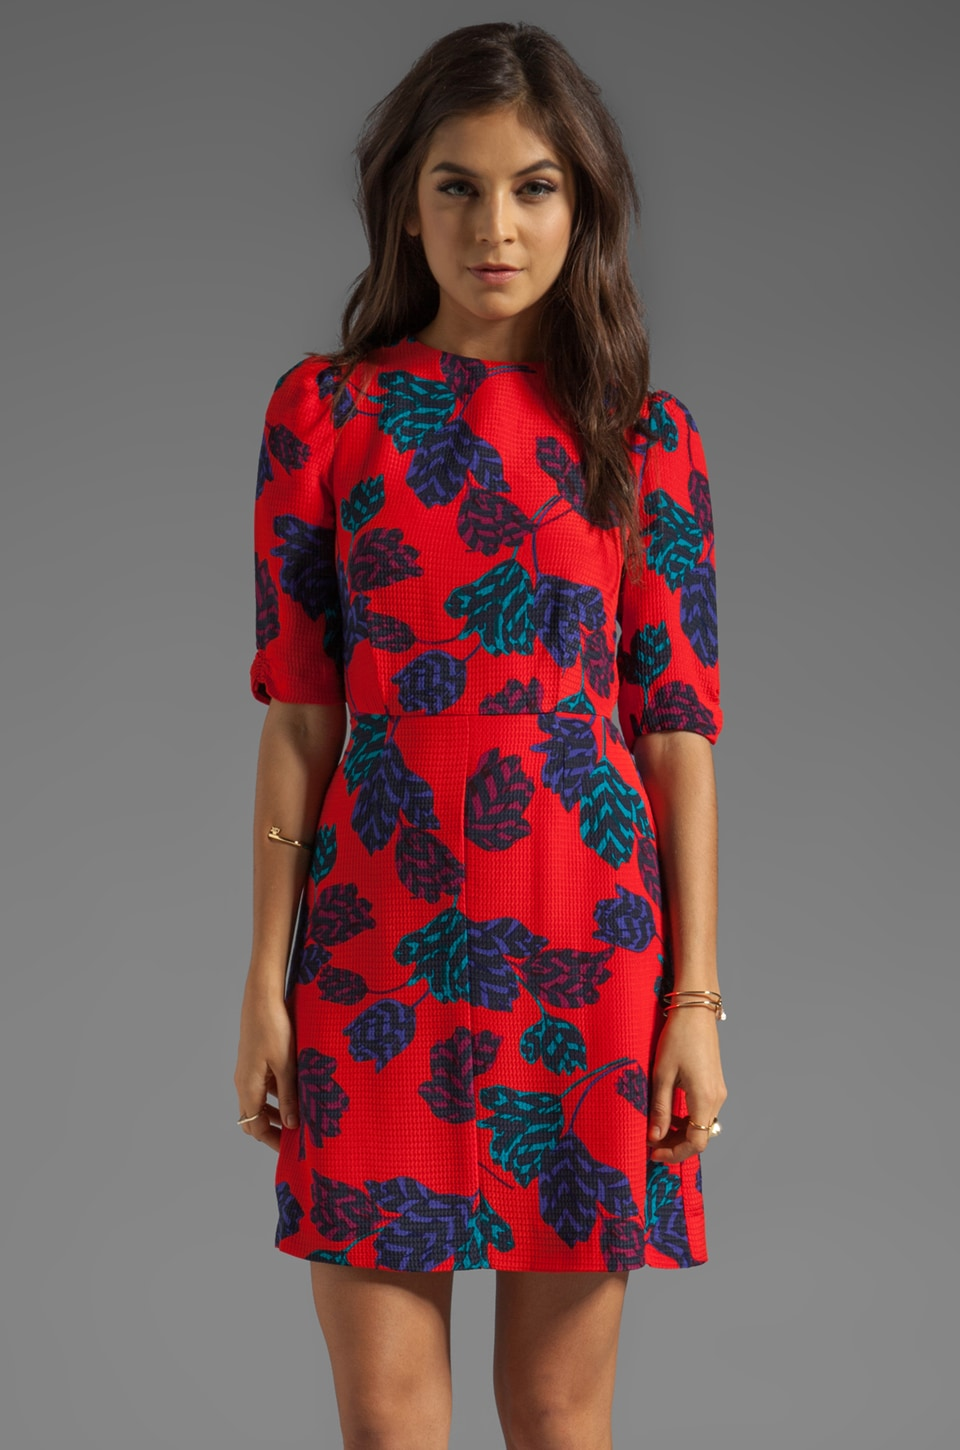 Marc by Marc Jacobs Mareika Tulip Dress in Corvette Red Multi